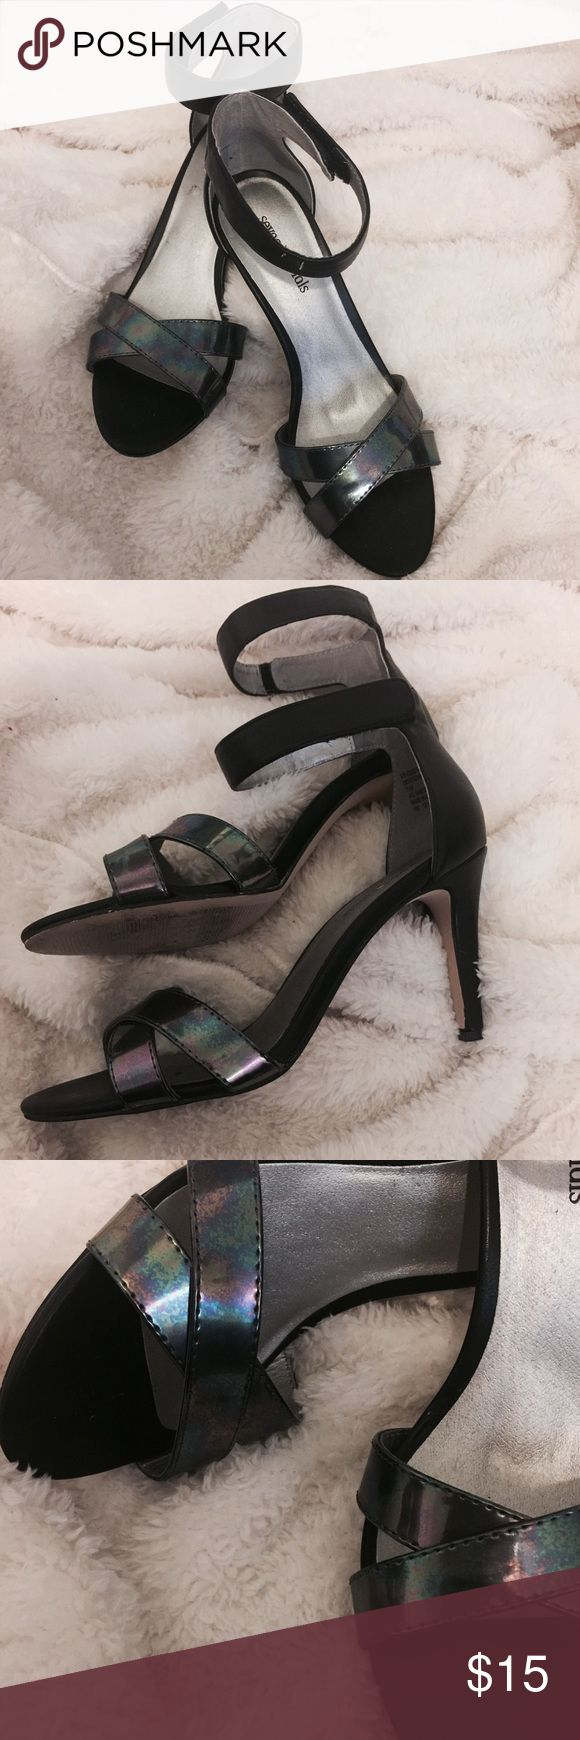 "Black stiletto heels 3.5"" iridescent heels by Seven Dials. Cross band stilettos with adjustable velcro strap. Only wore these once! Seven Dials Shoes Heels"